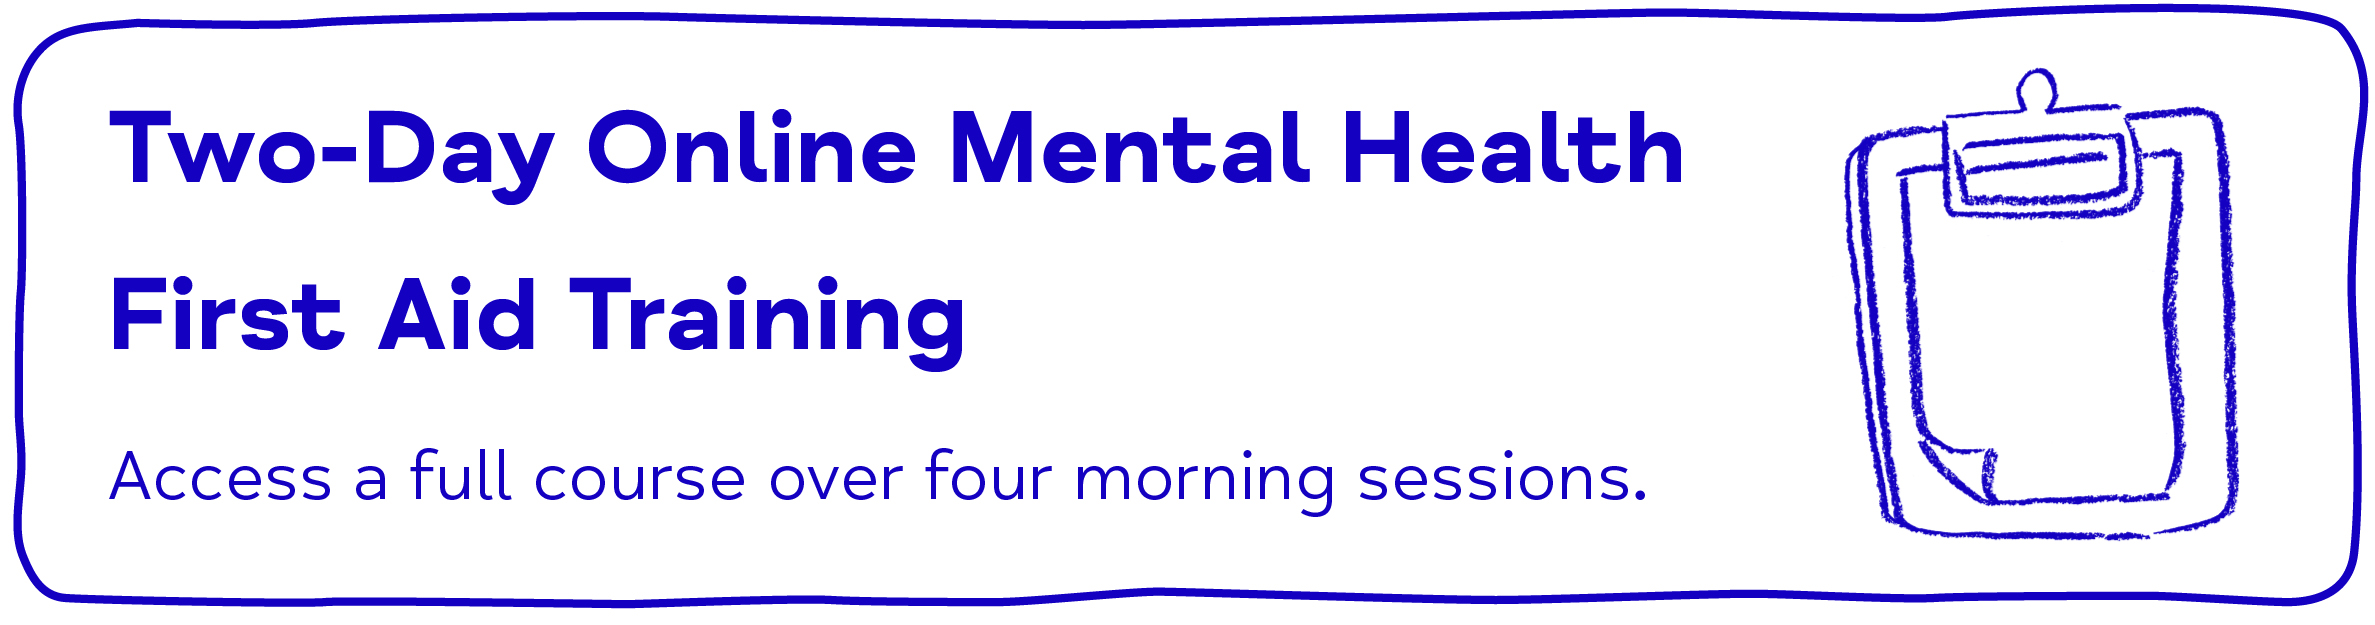 Two-Day Online Mental Health First Aid Training. Access a full course over four morning sessions.